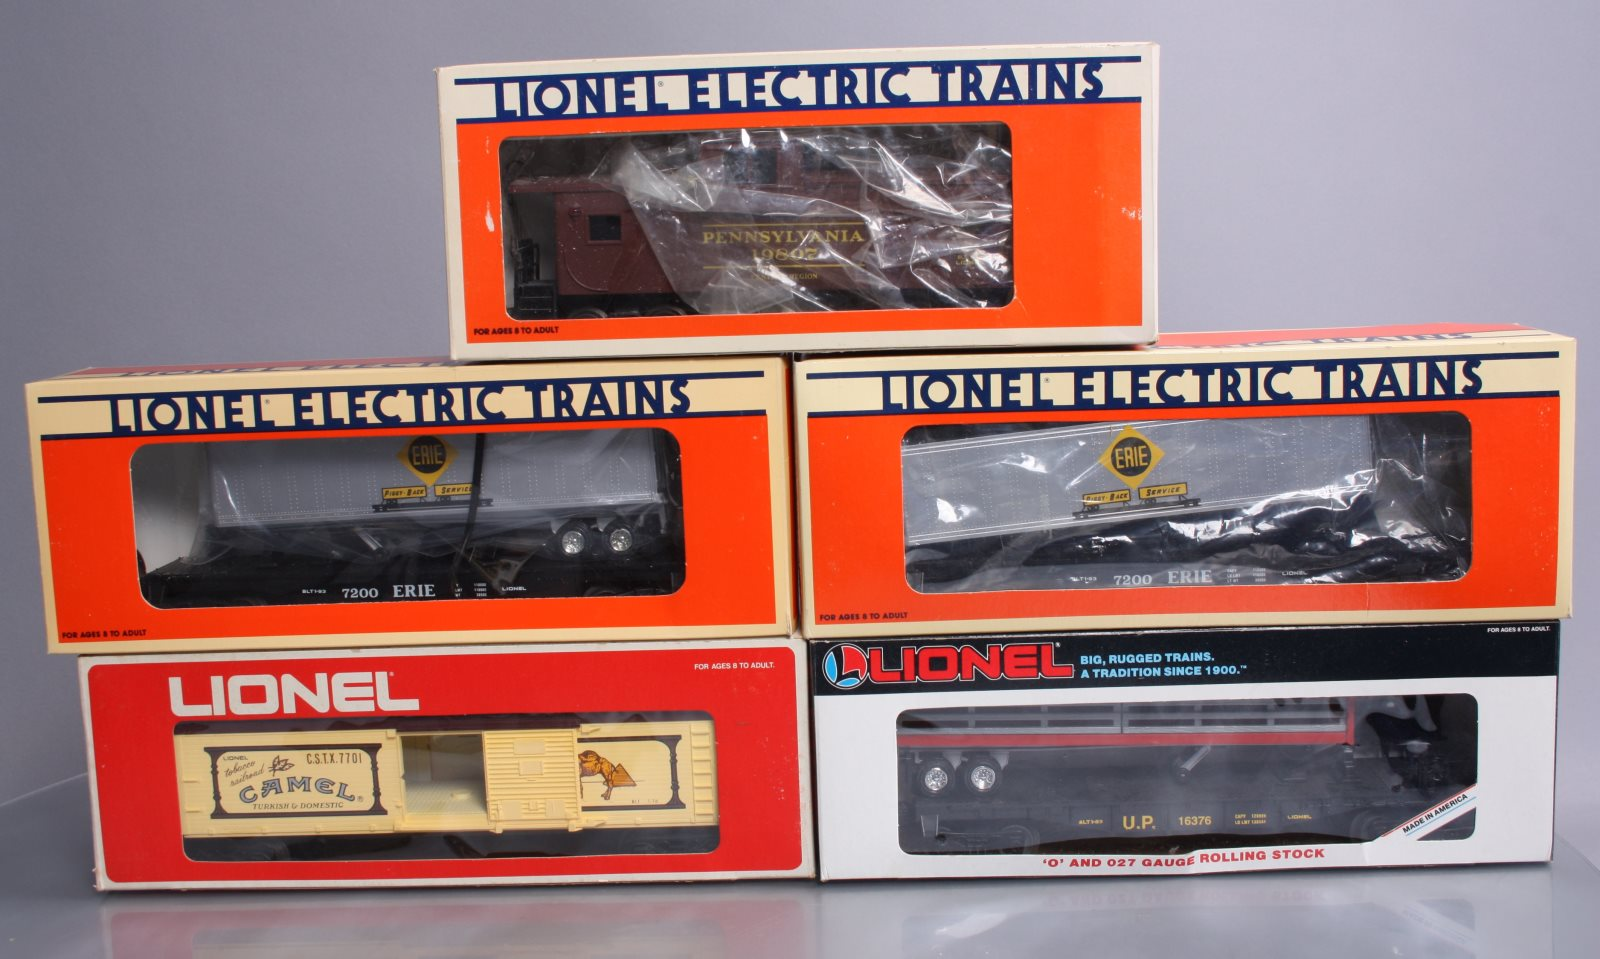 Lionel O Gauge Modern Freight Cars: 6-19415, 6-19415, 6-19807, 6-16376 & 6-7701  Lionel